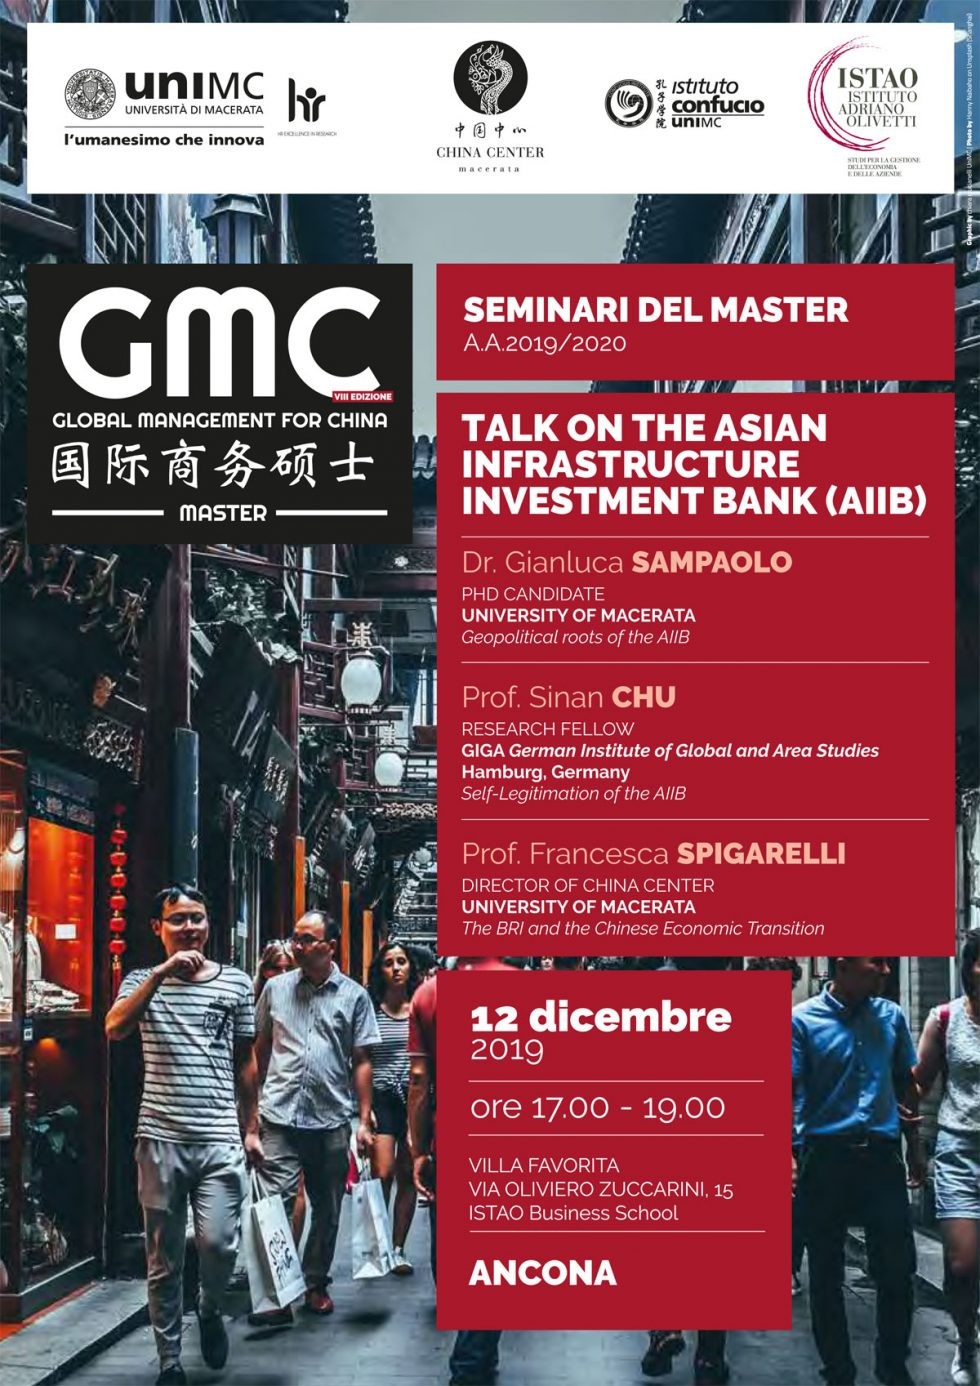 Talk on the Asian Infrastructure Investment Bank (AIIB)